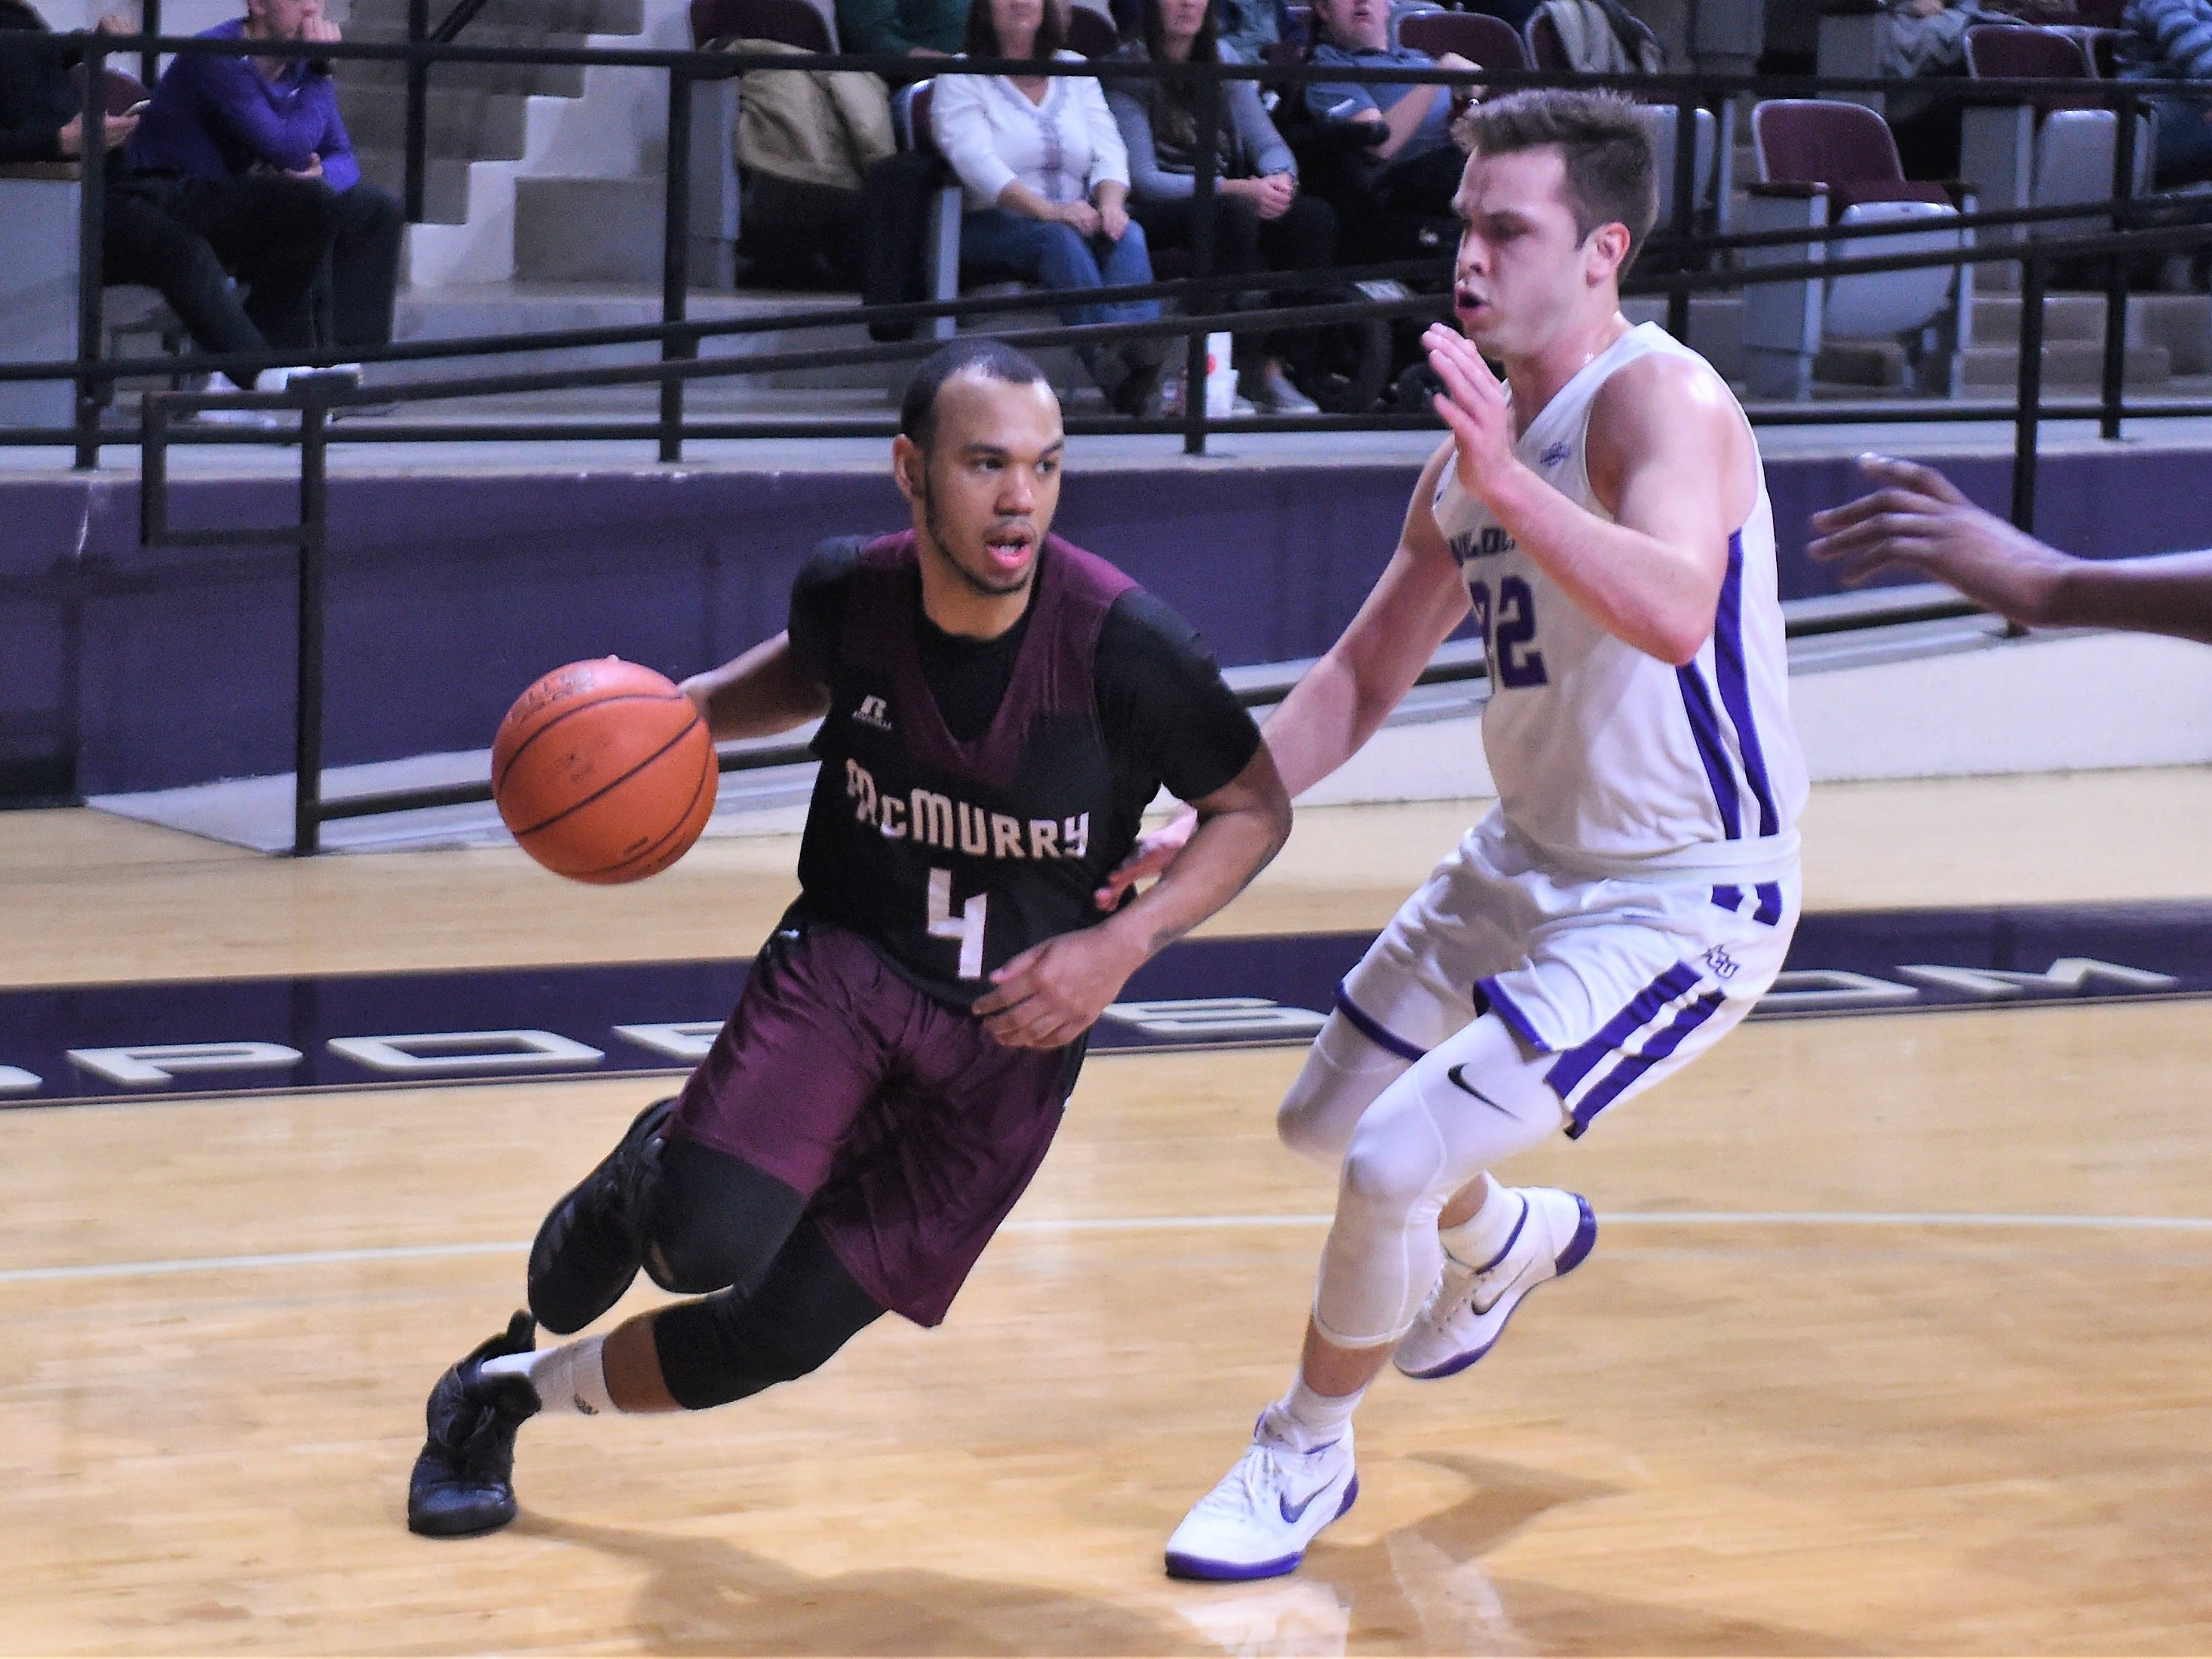 McMurry's Colin Taylor (4) tries to drive past ACU's Chase Cobb (22) during Saturday's game at Moody Coliseum.